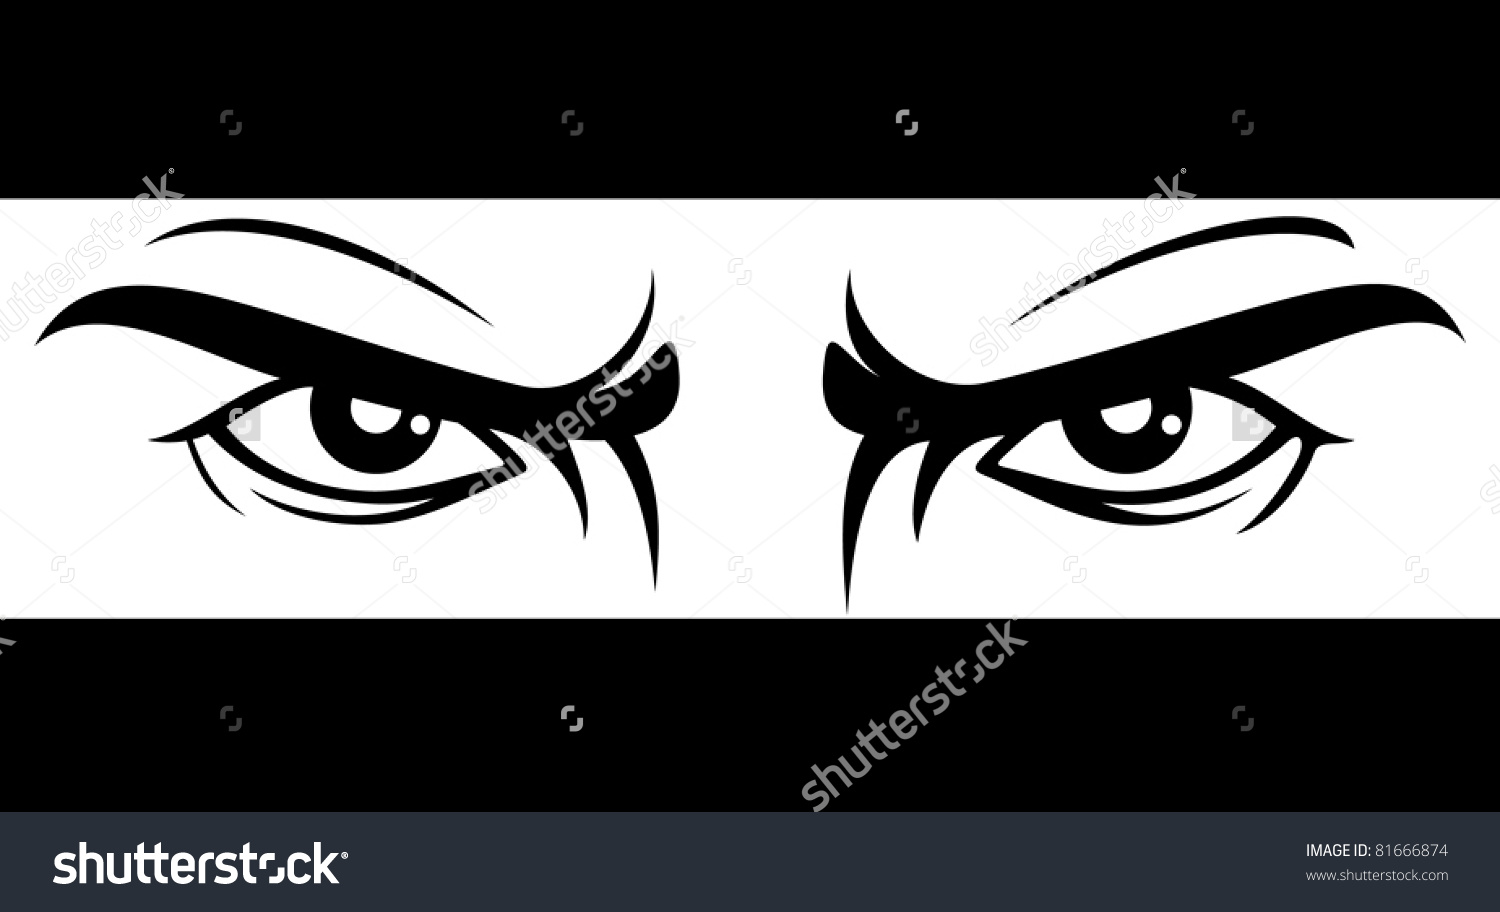 Angry Look Clipart.